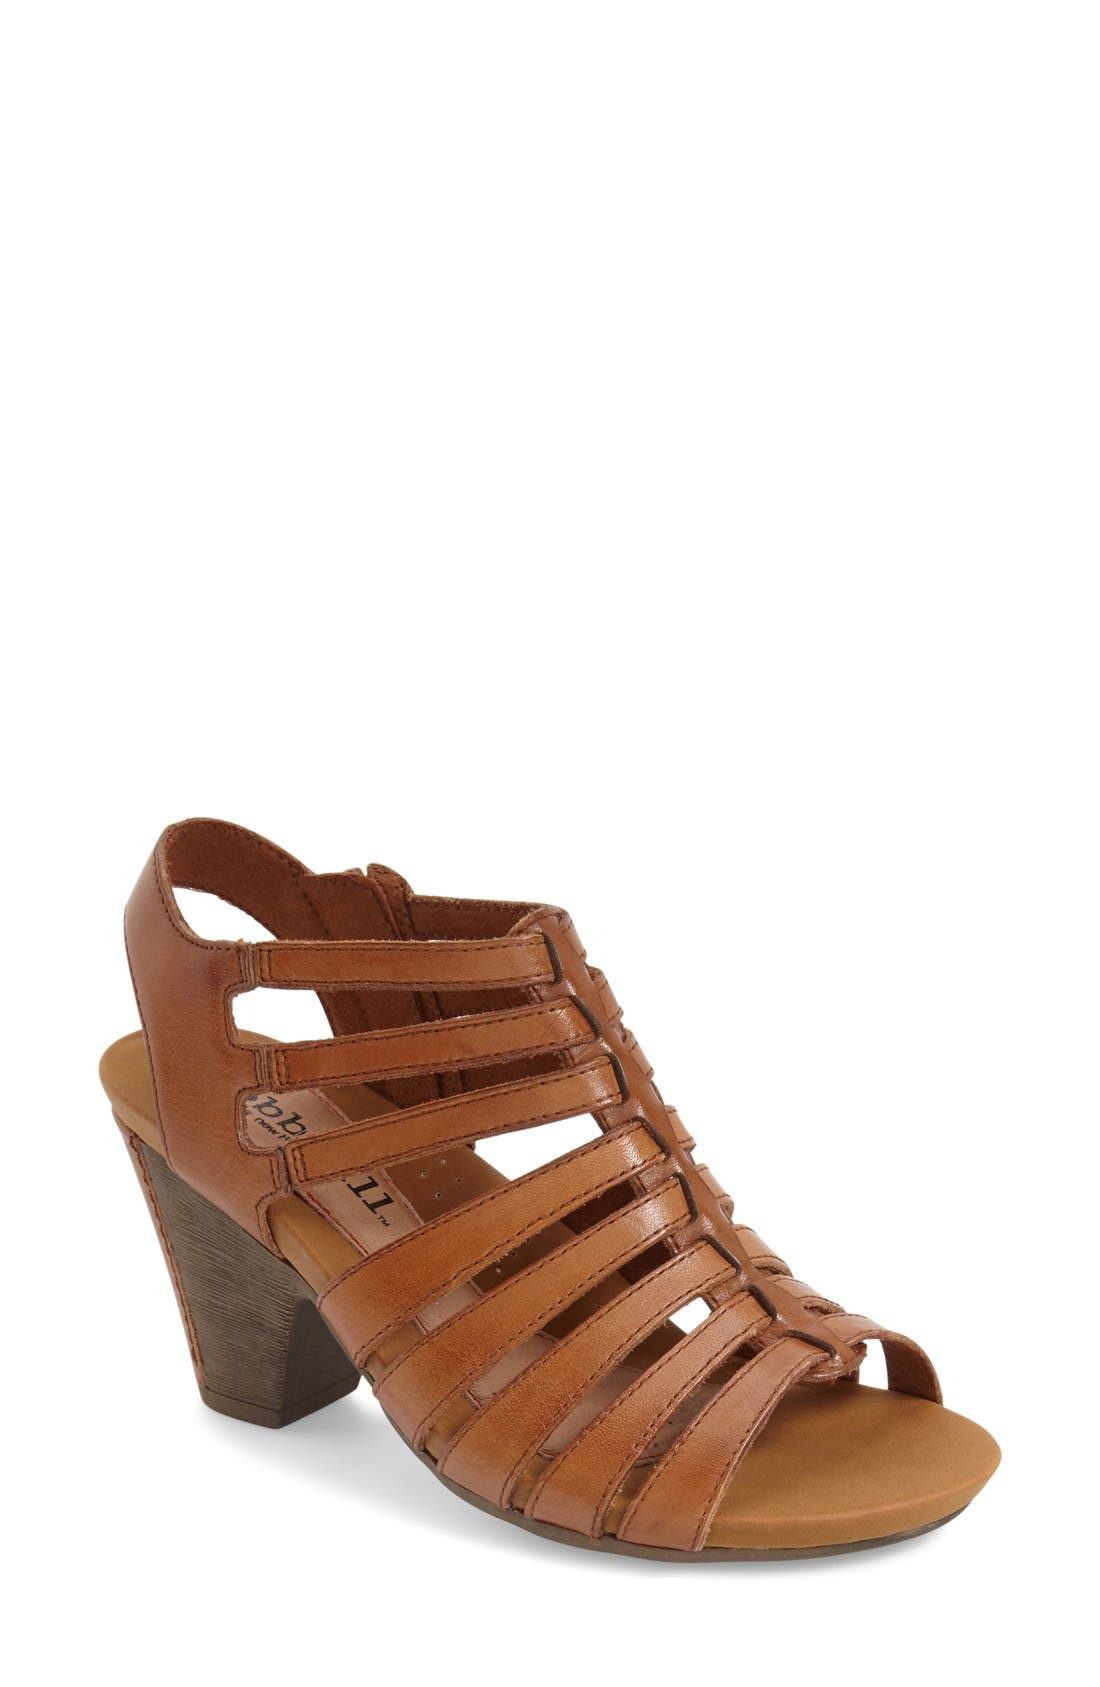 Main Image - Rockport Cobb Hill 'Taylor' Caged Sandal (Women)